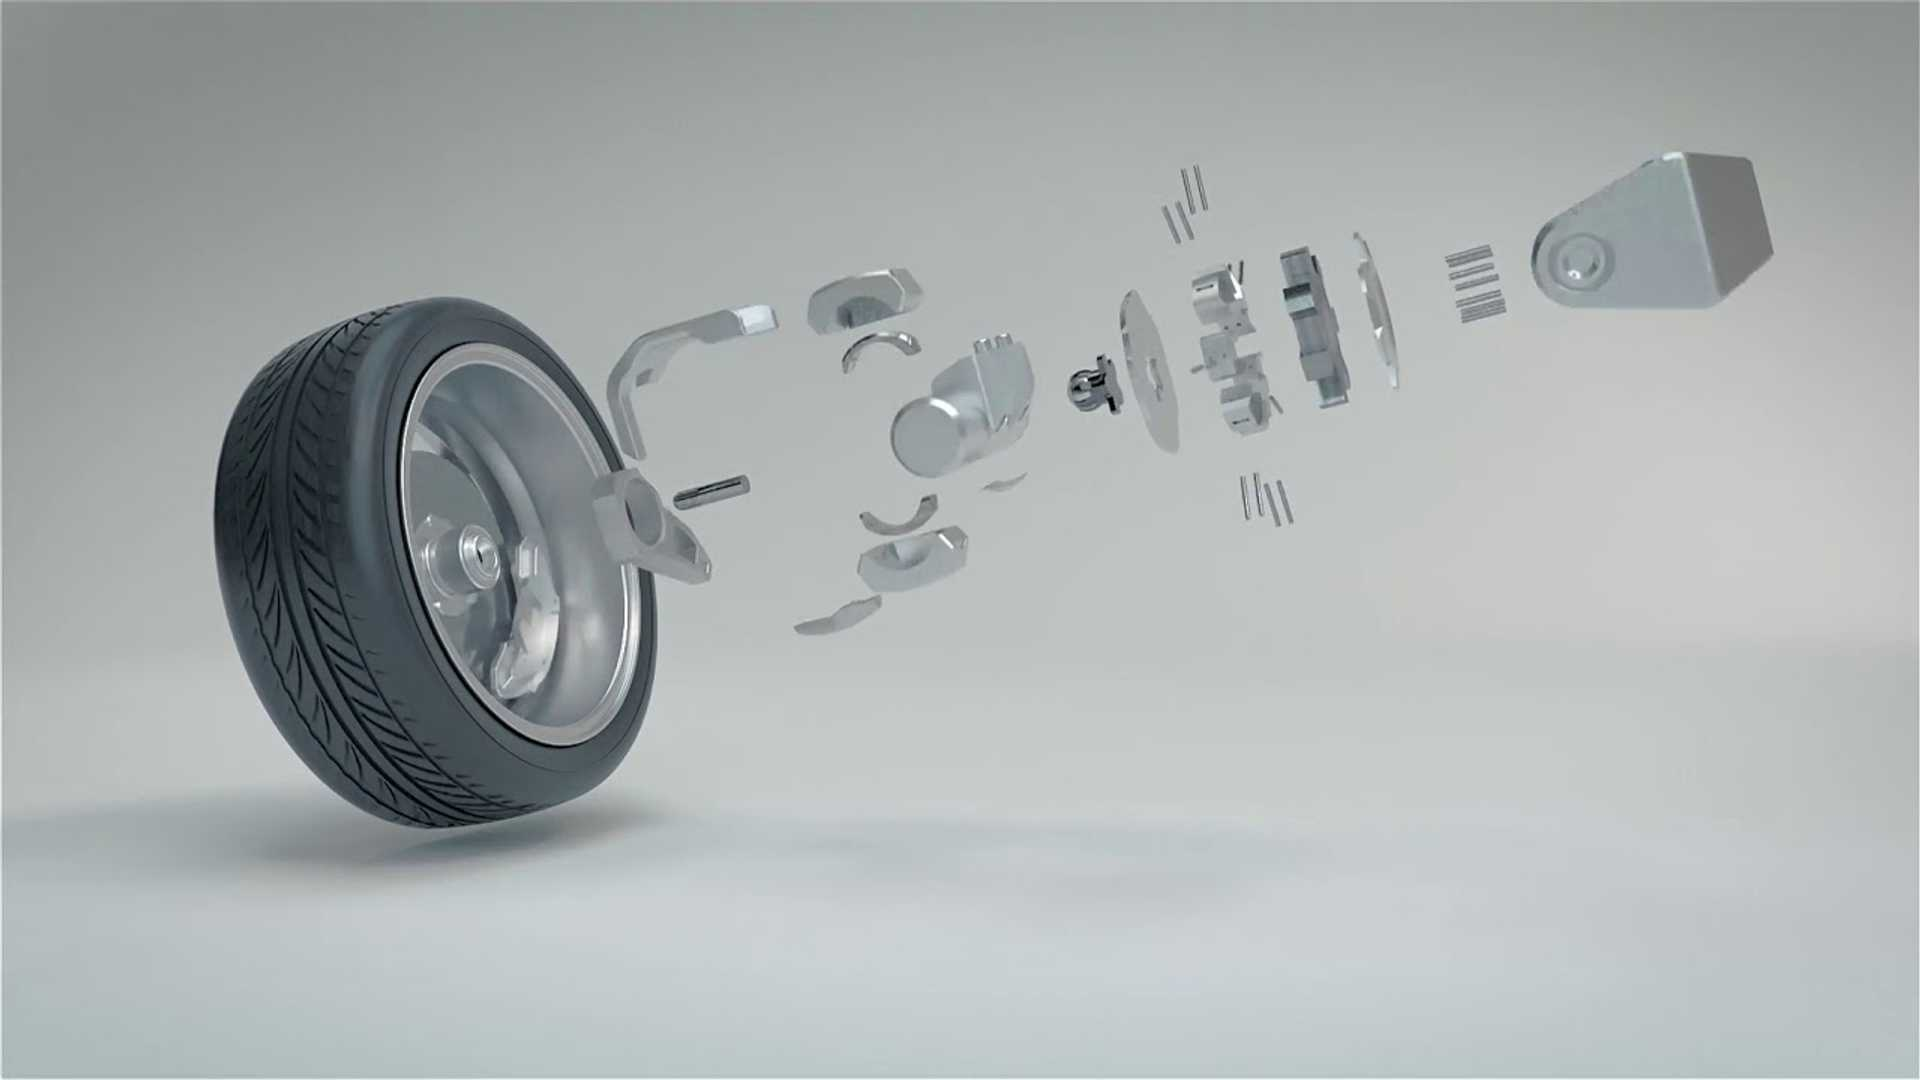 Israeli EV Startup REE Claims To Have Reinvented The Wheel